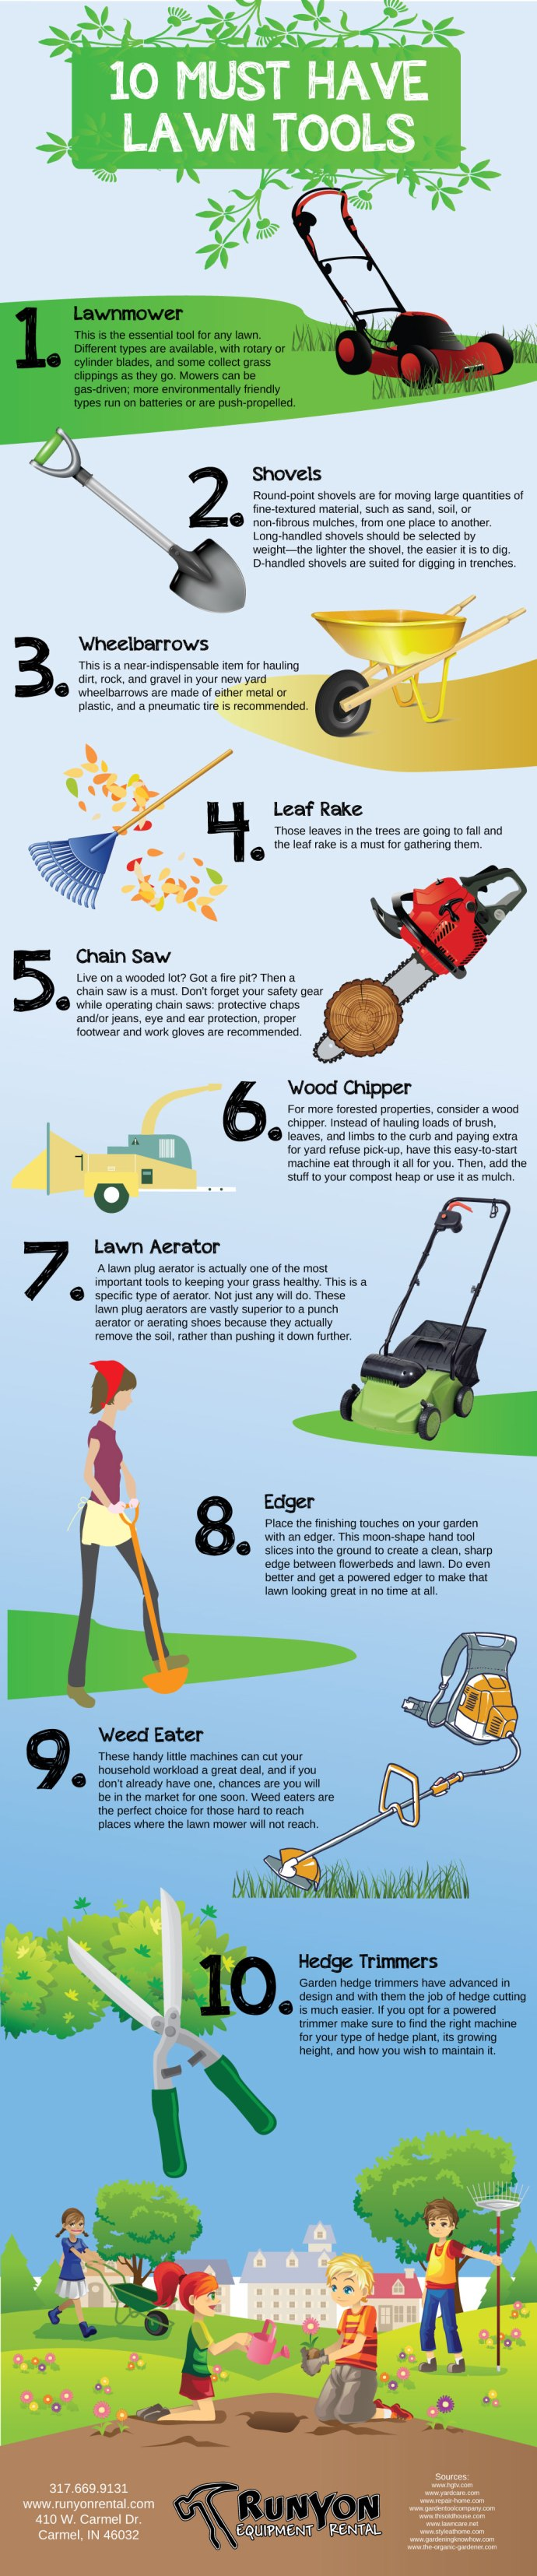 10 Must Have Lawn Tools